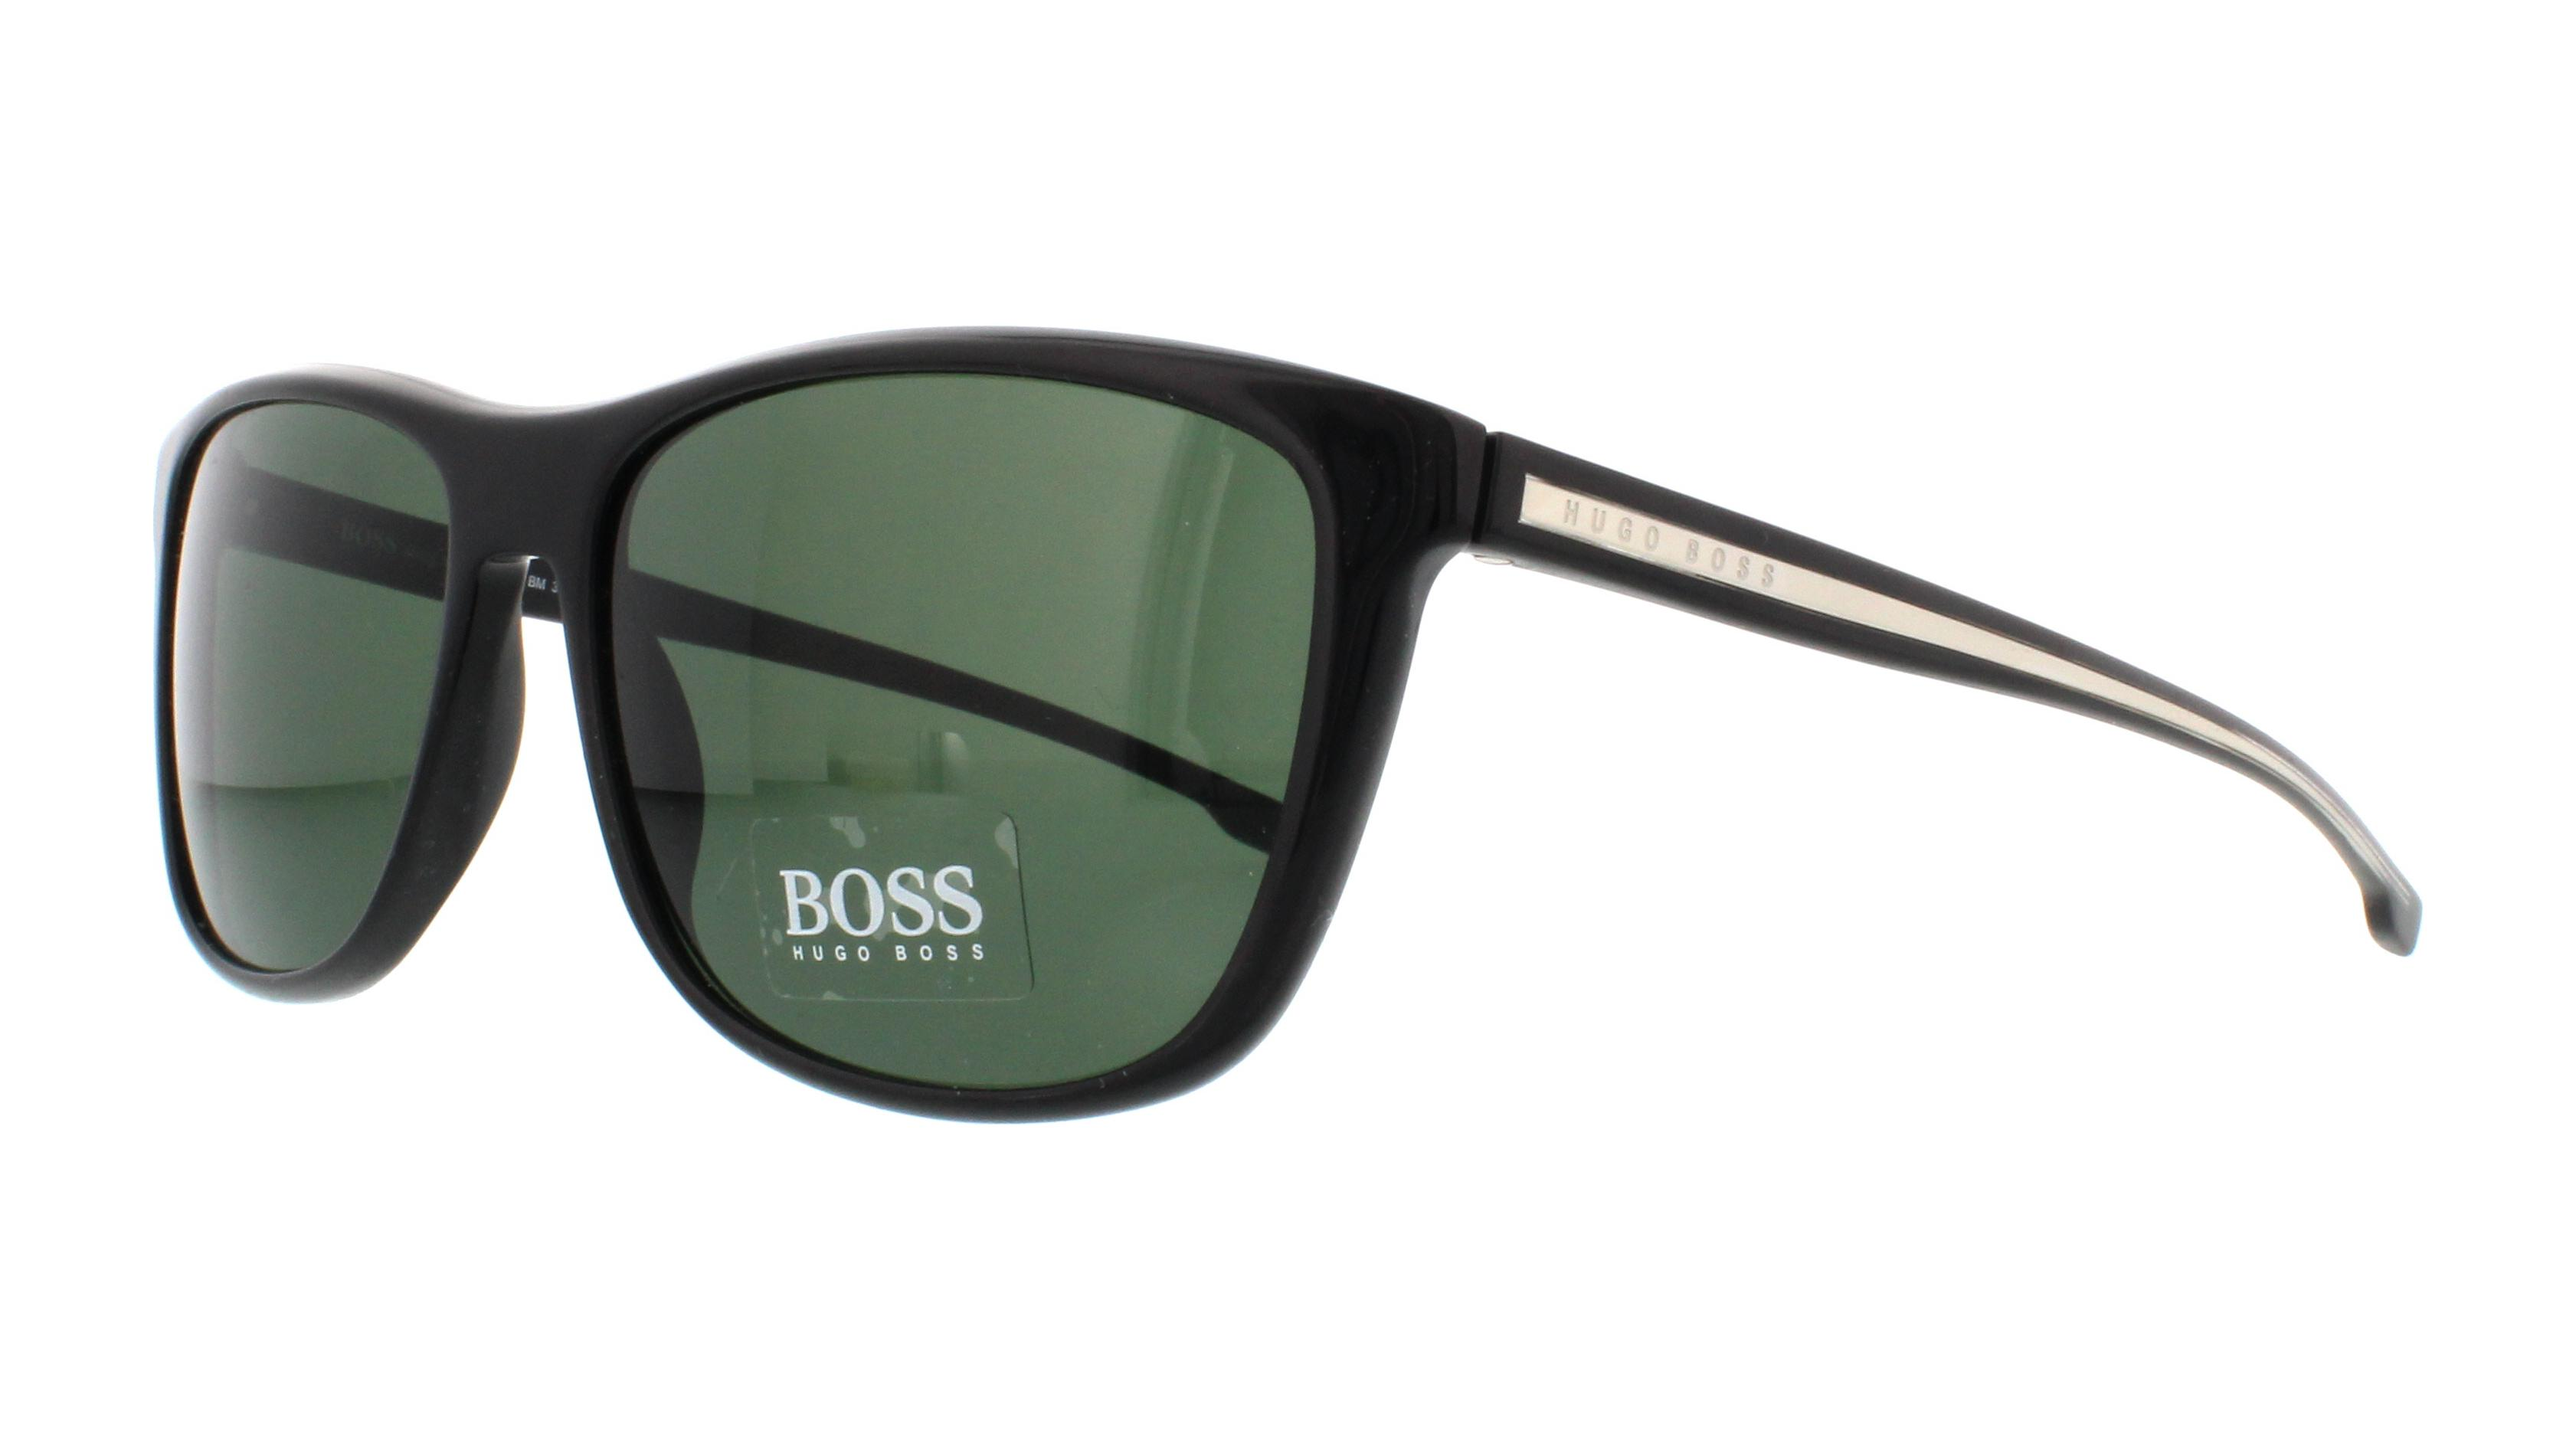 99824a566d HUGO BOSS Sunglasses 0874 S 0YPP Black 59MM 762753503954